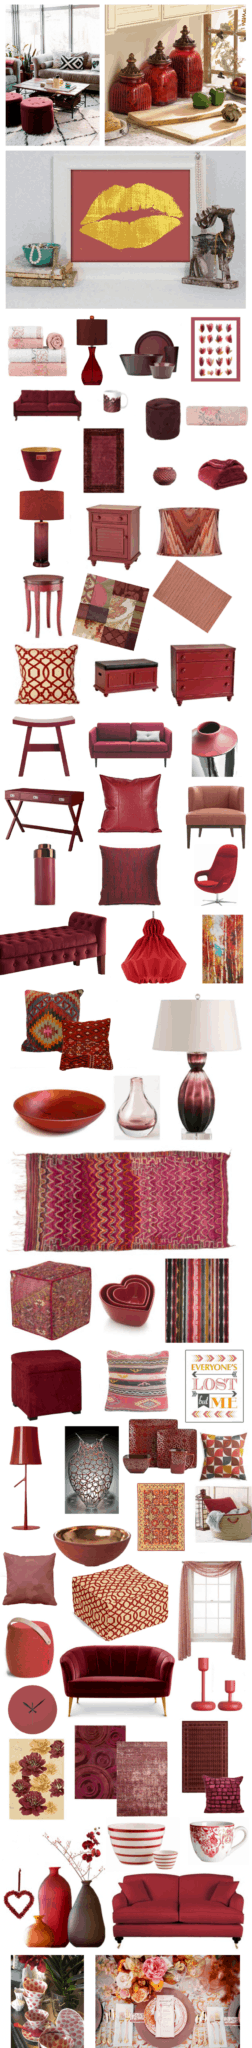 cor-marsala-decor-5